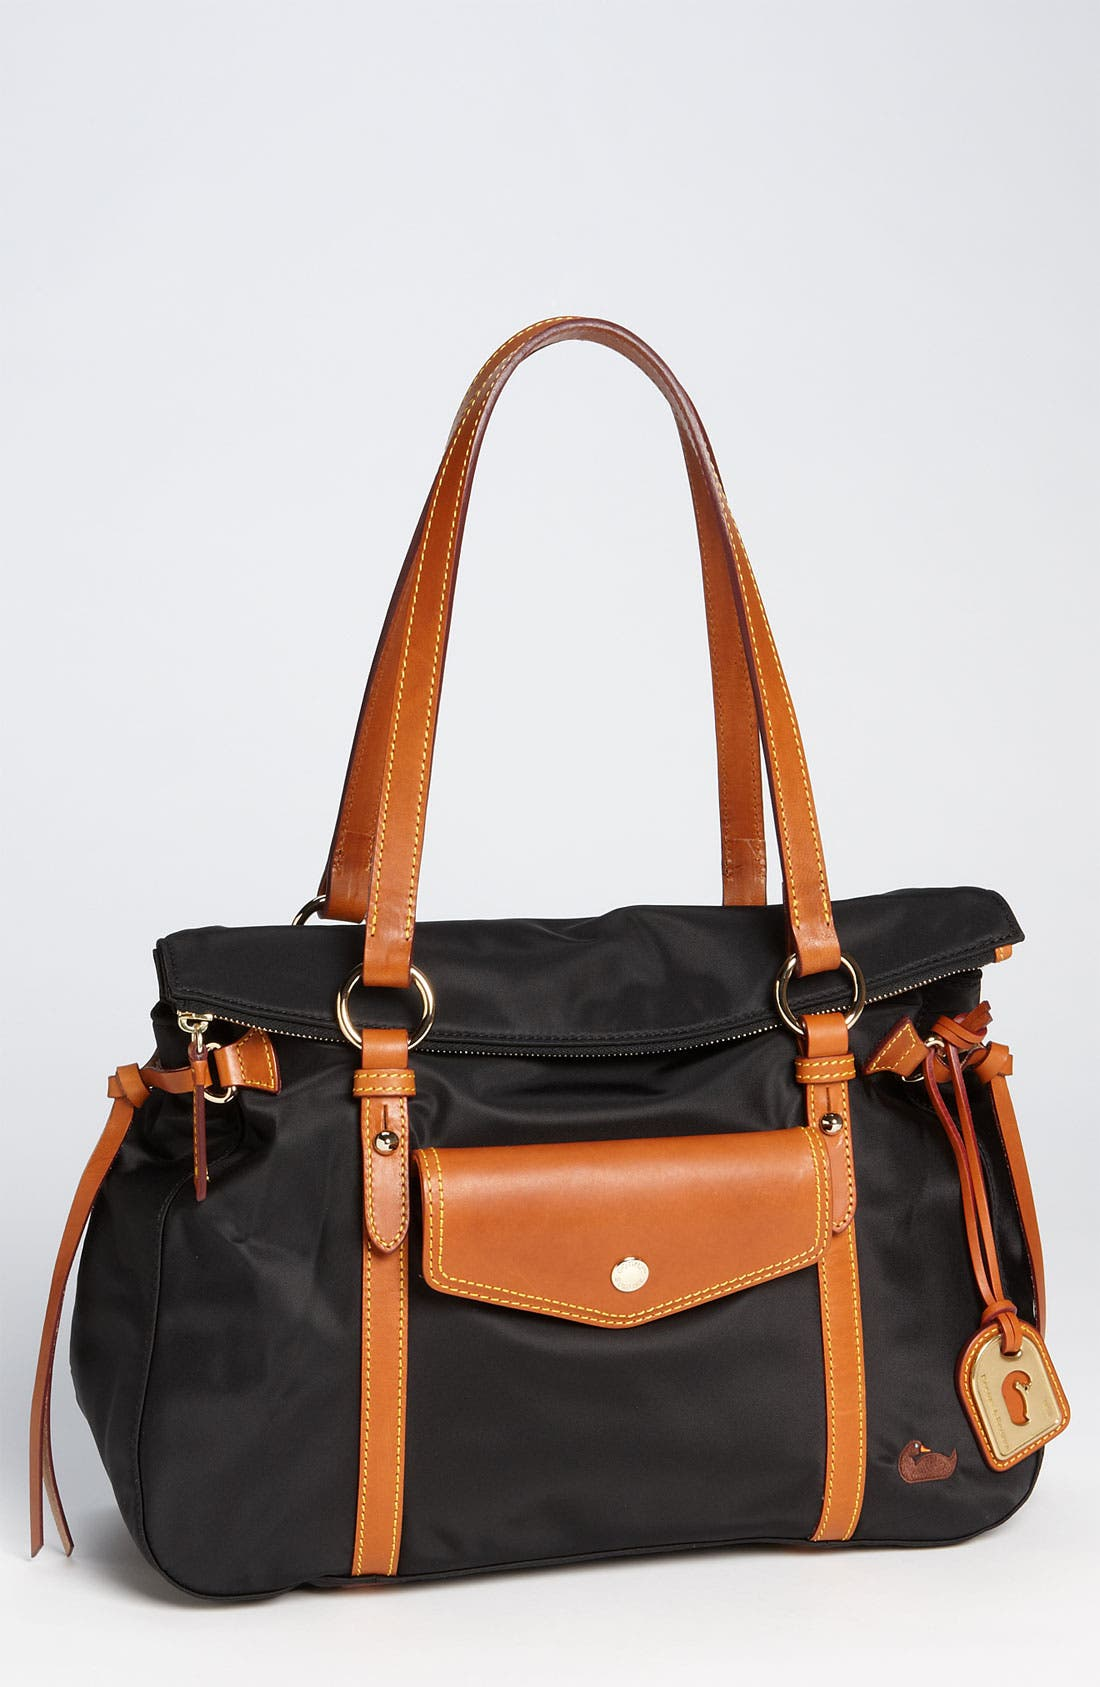 DOONEY & BOURKE,                             'The Smith' Shopper,                             Main thumbnail 1, color,                             002